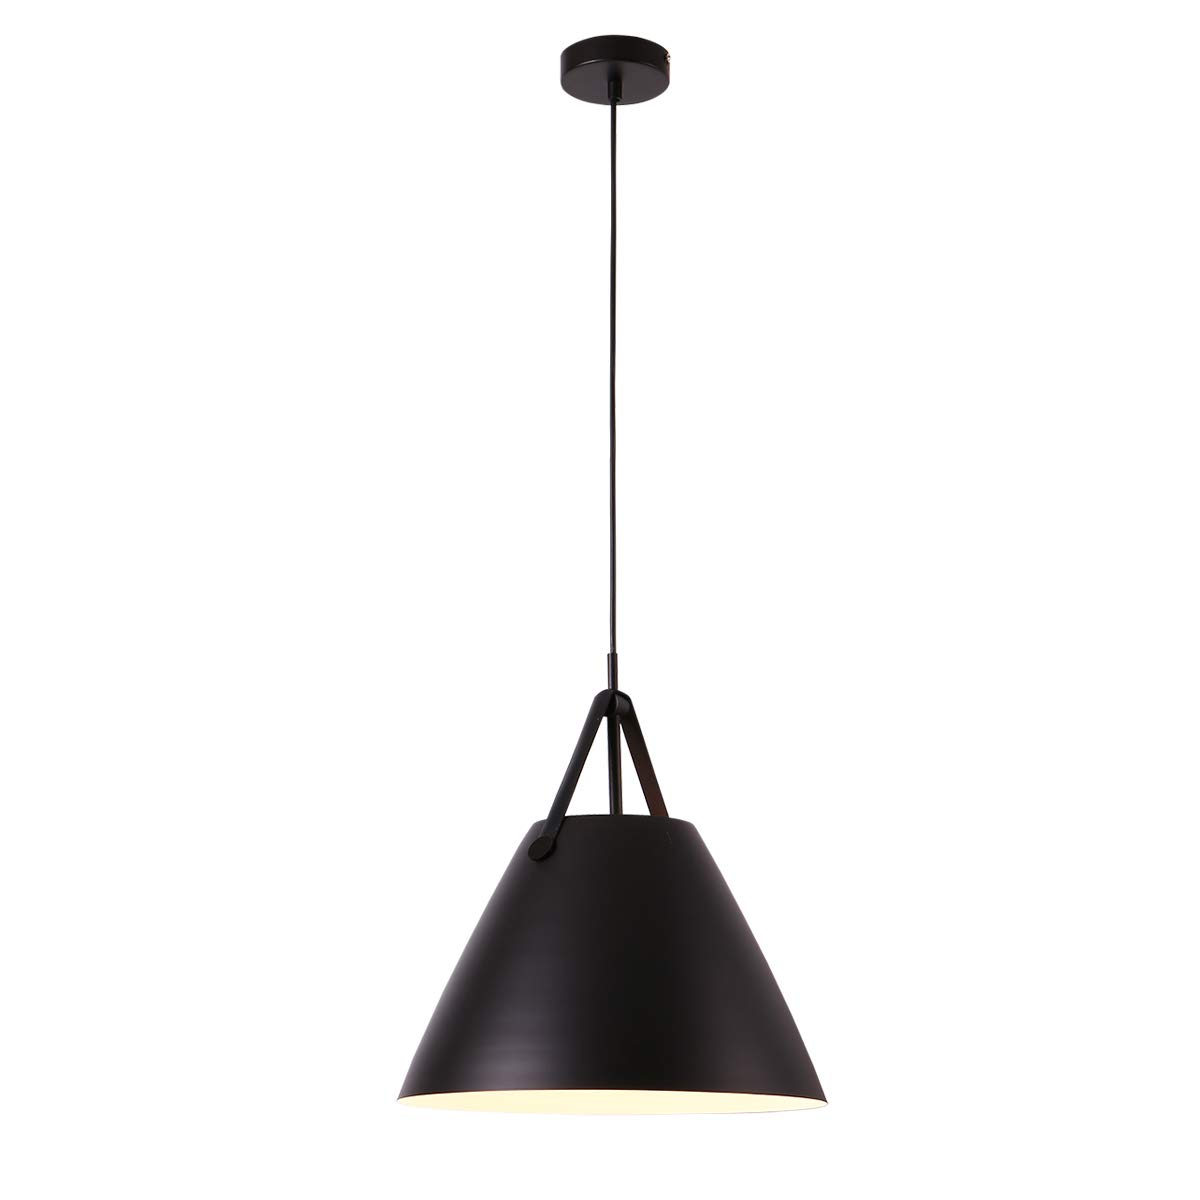 Contemporary One-Light Adjustable Pendant Light-Nordic Simple Style Oval Shape Household Ceiling Hanging Lamp (Black, L)